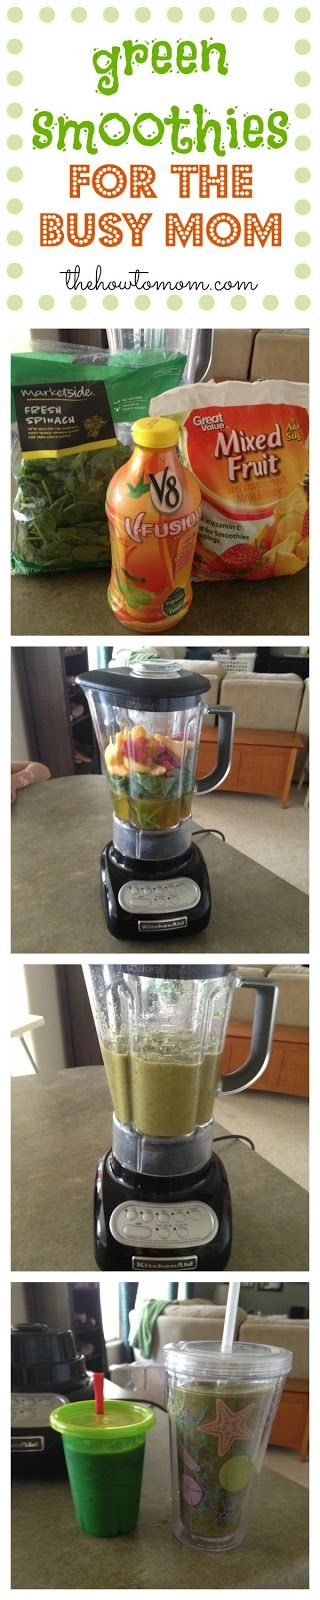 yummy green smoothies for the busy mom - these taste like Jamba Juice's Caribbean Passion smoothie!